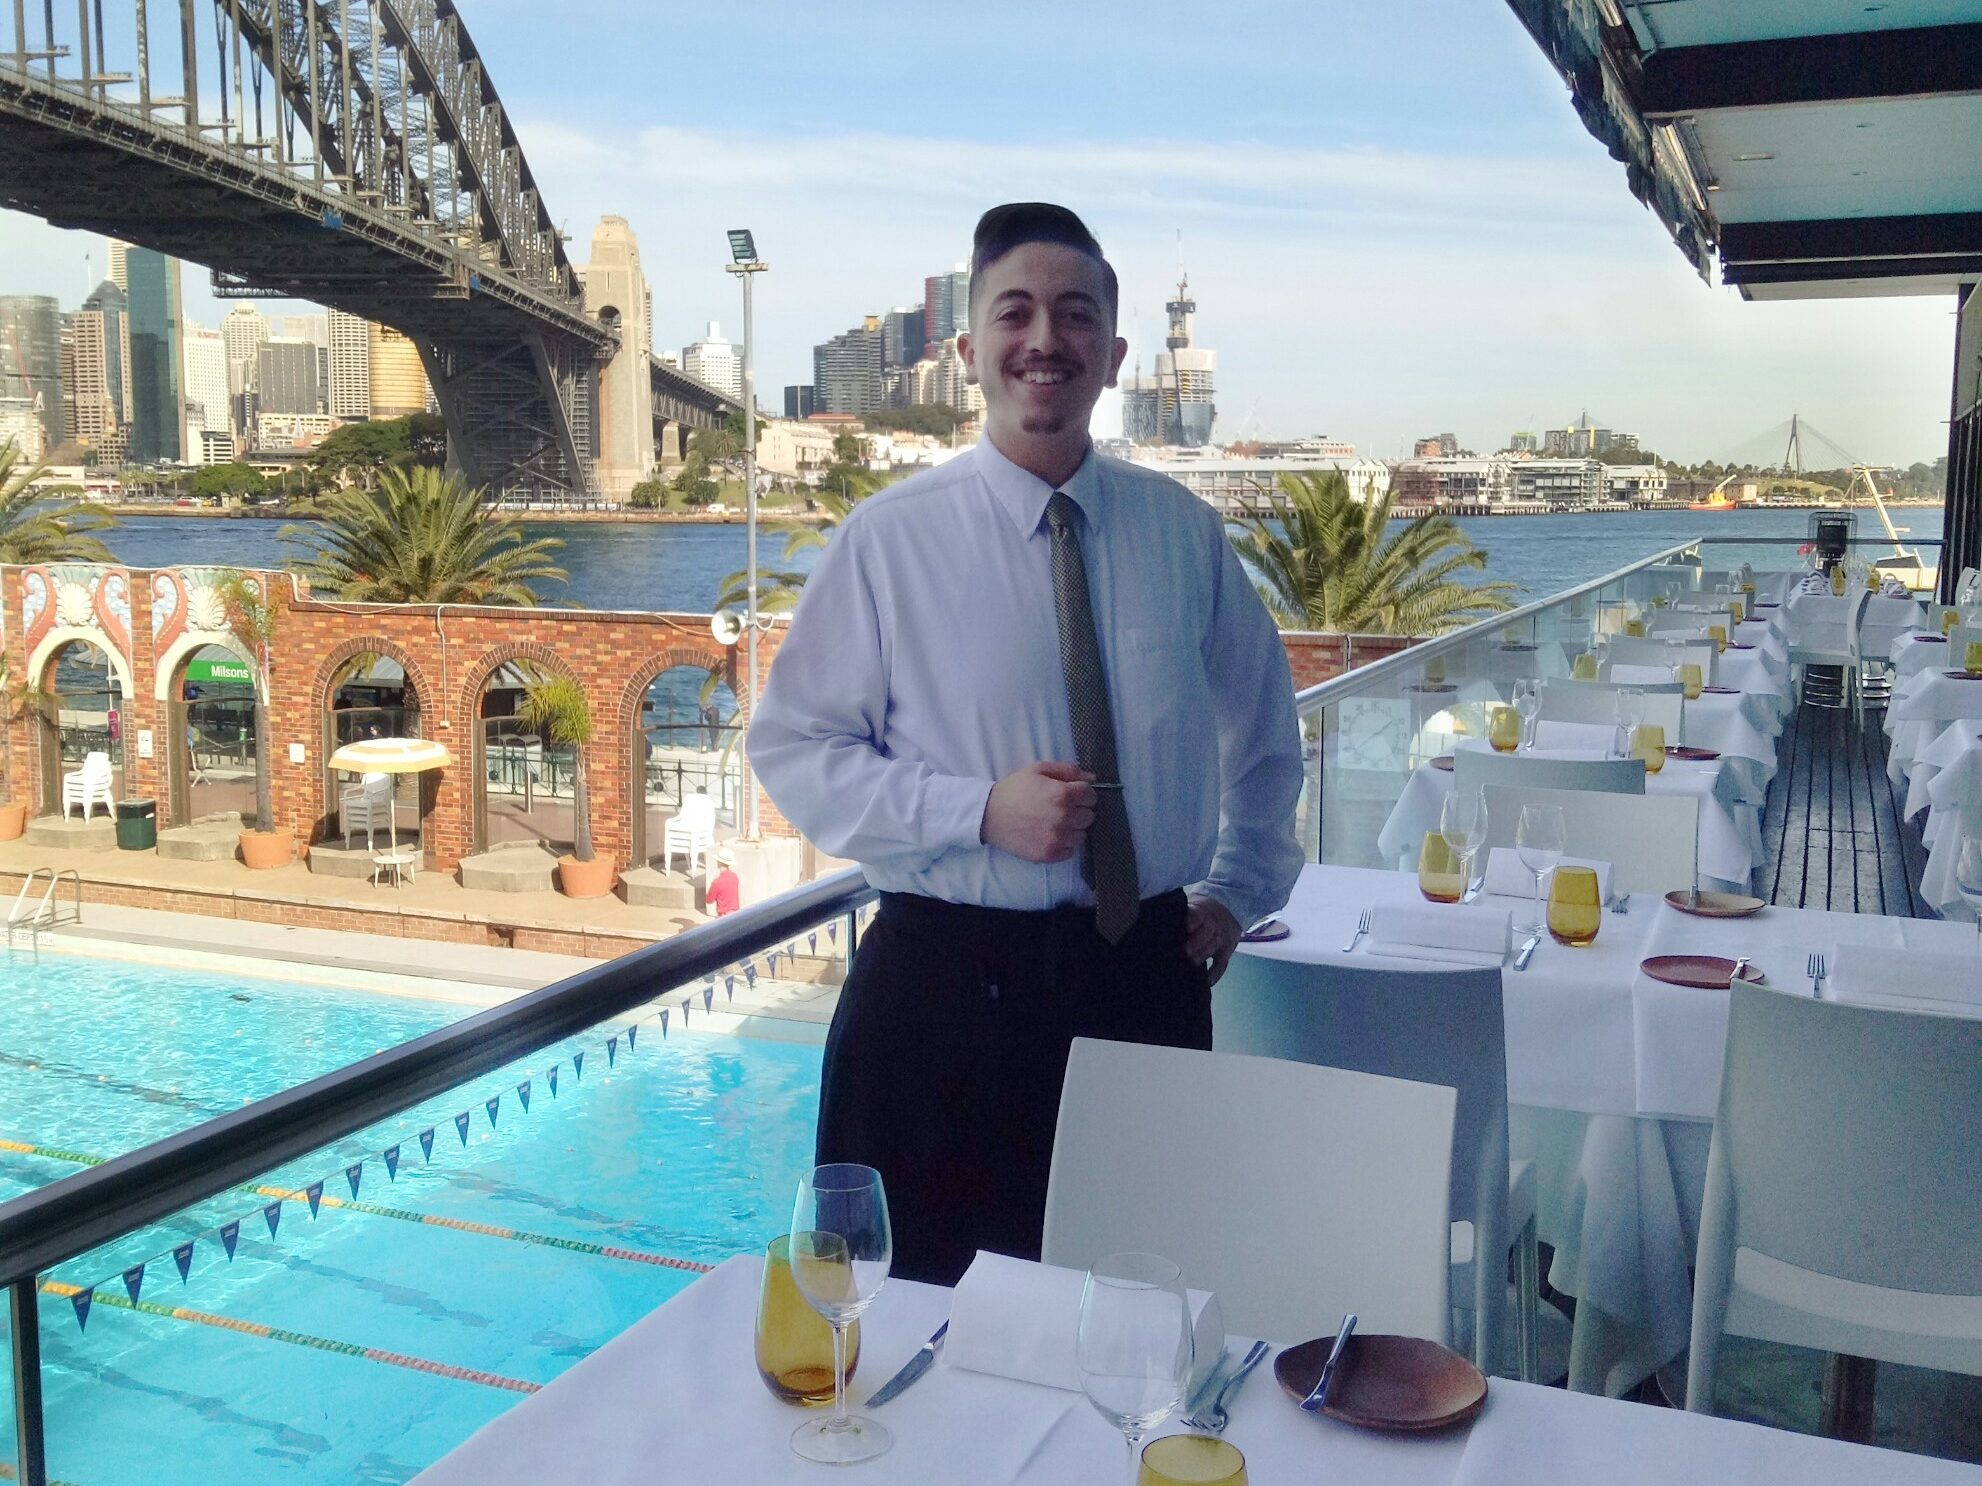 Issam Performing His Work Placement At Aqua Dining Pacific Training Group